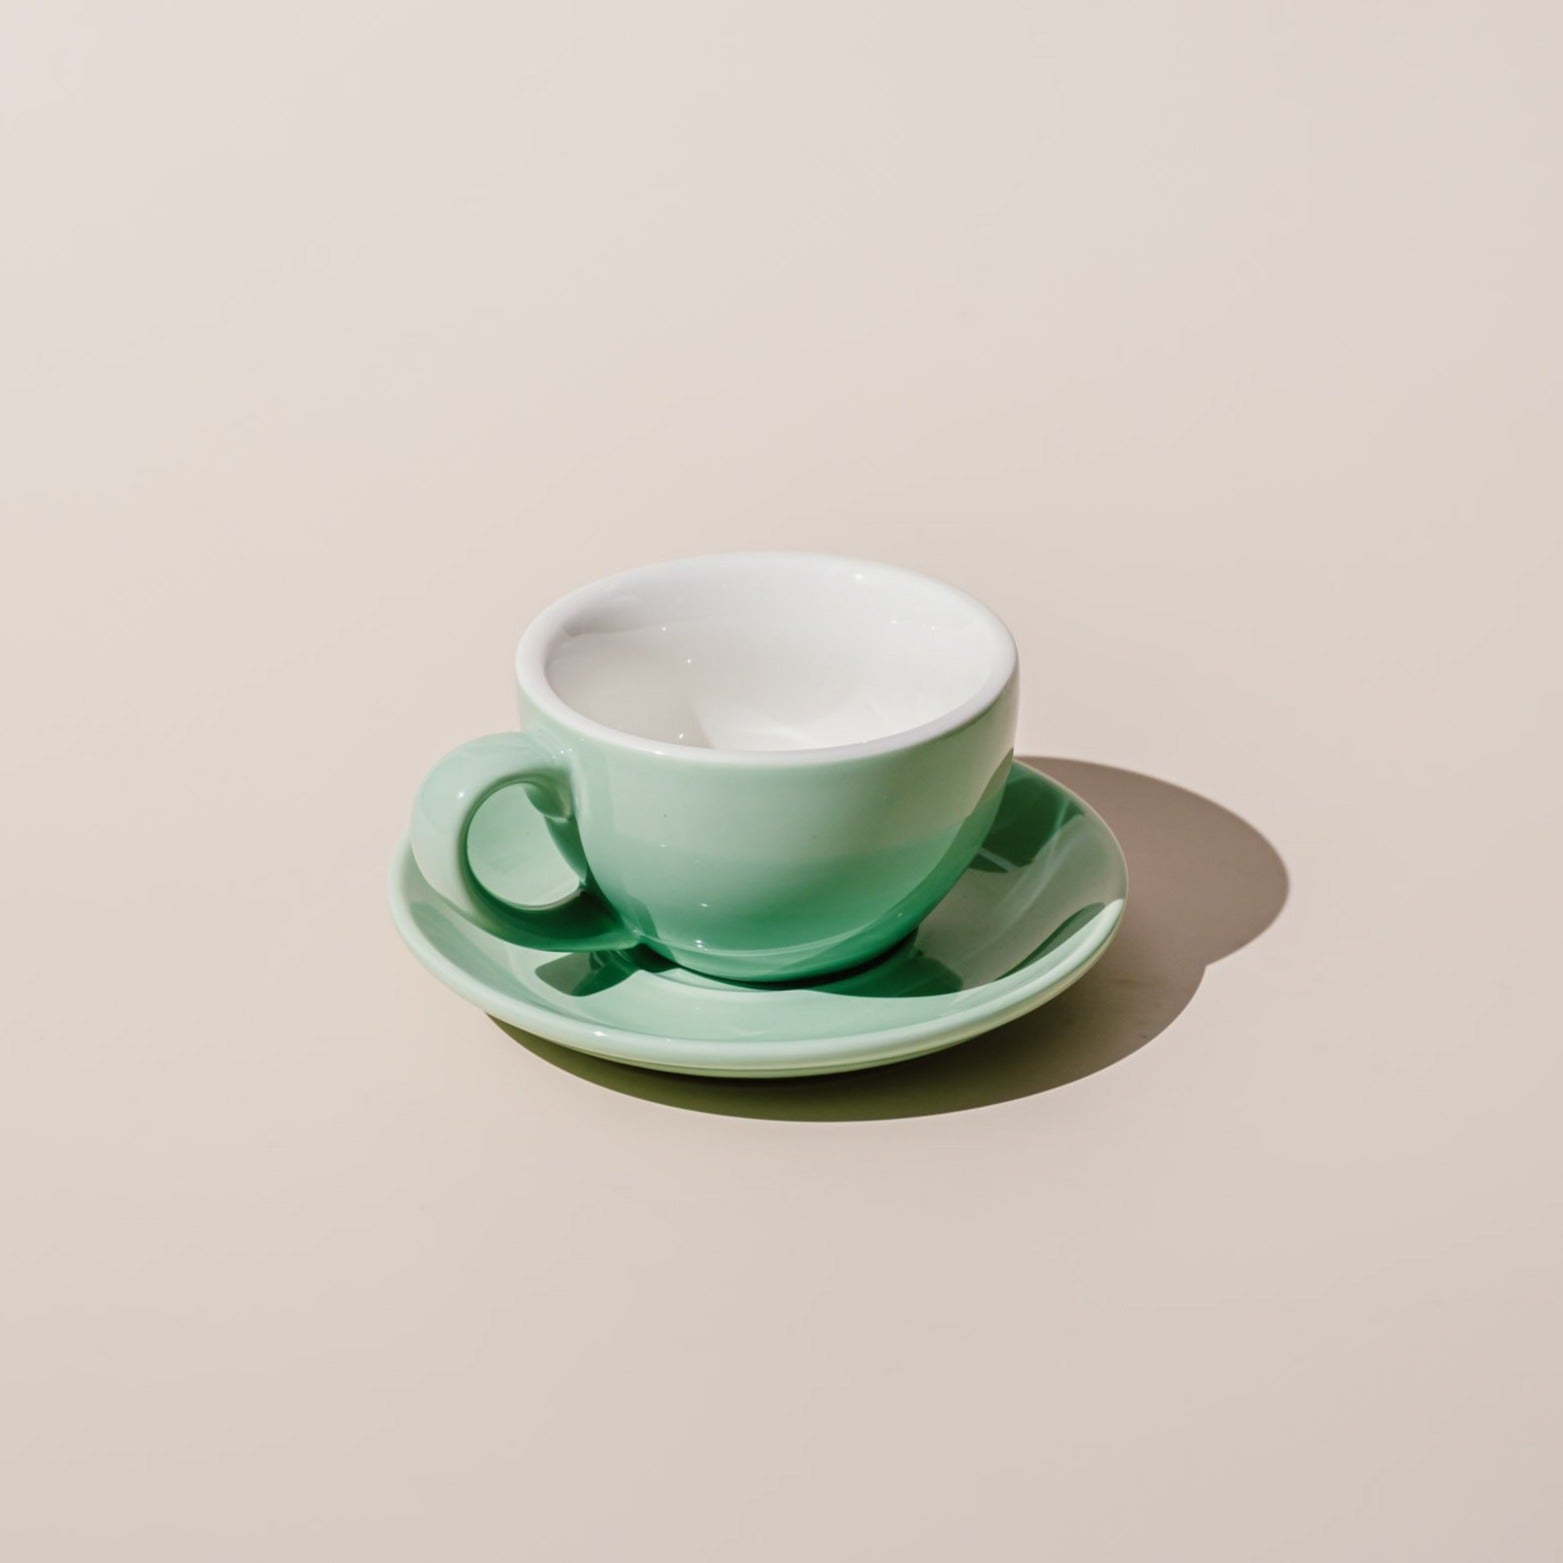 150ML Flat White Porcelain Egg Cup & Saucer